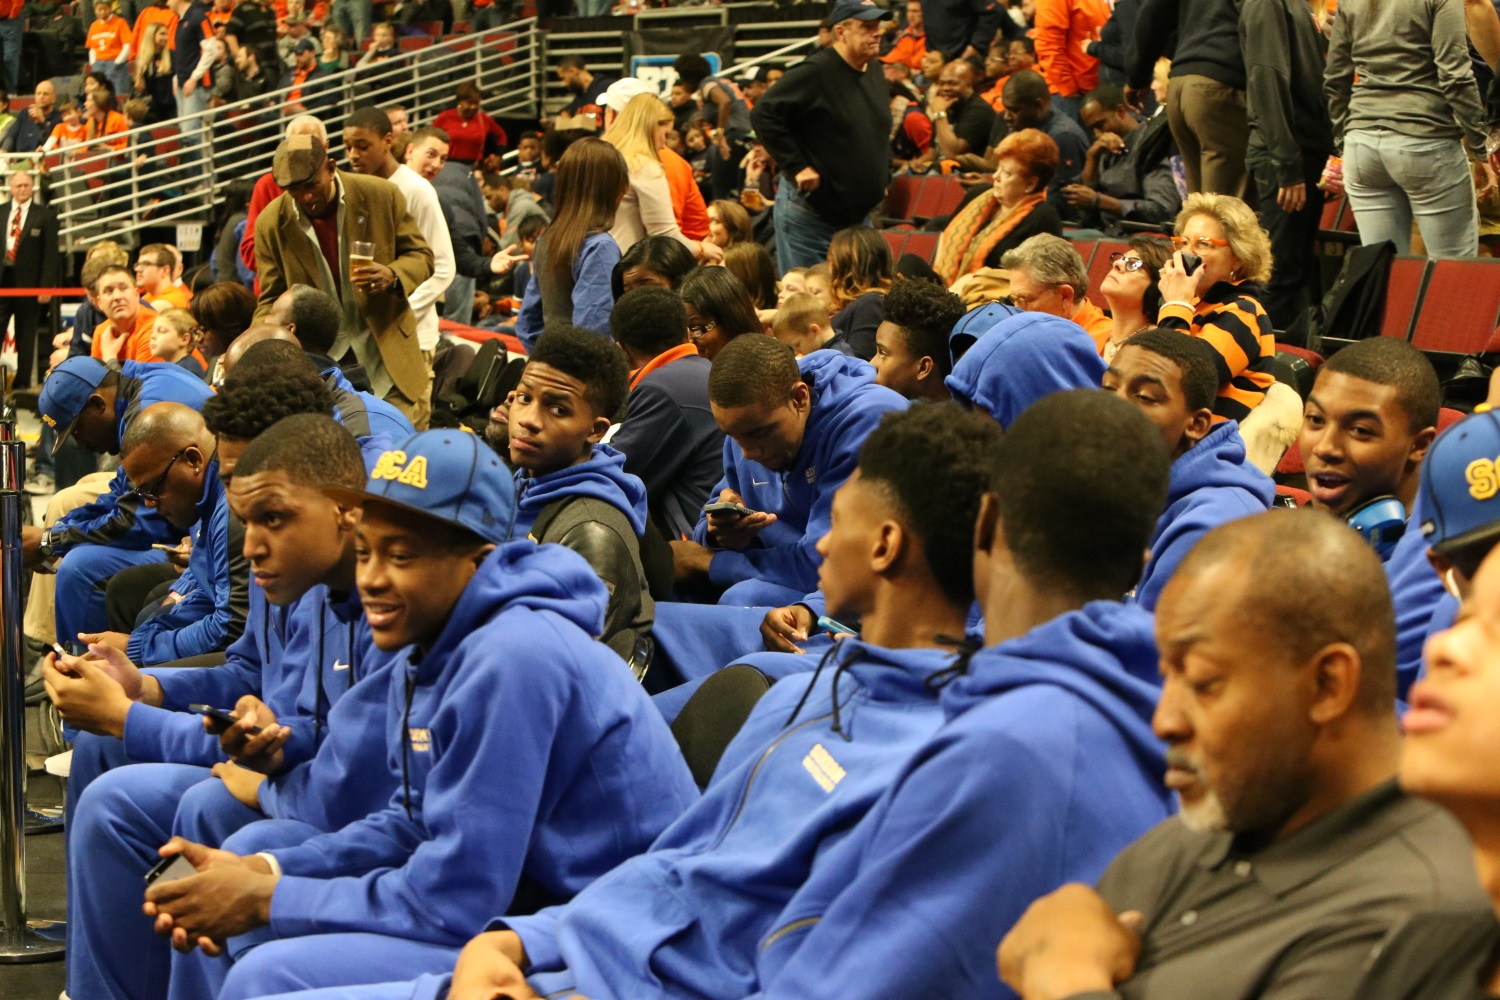 Simeon boys team at United Center